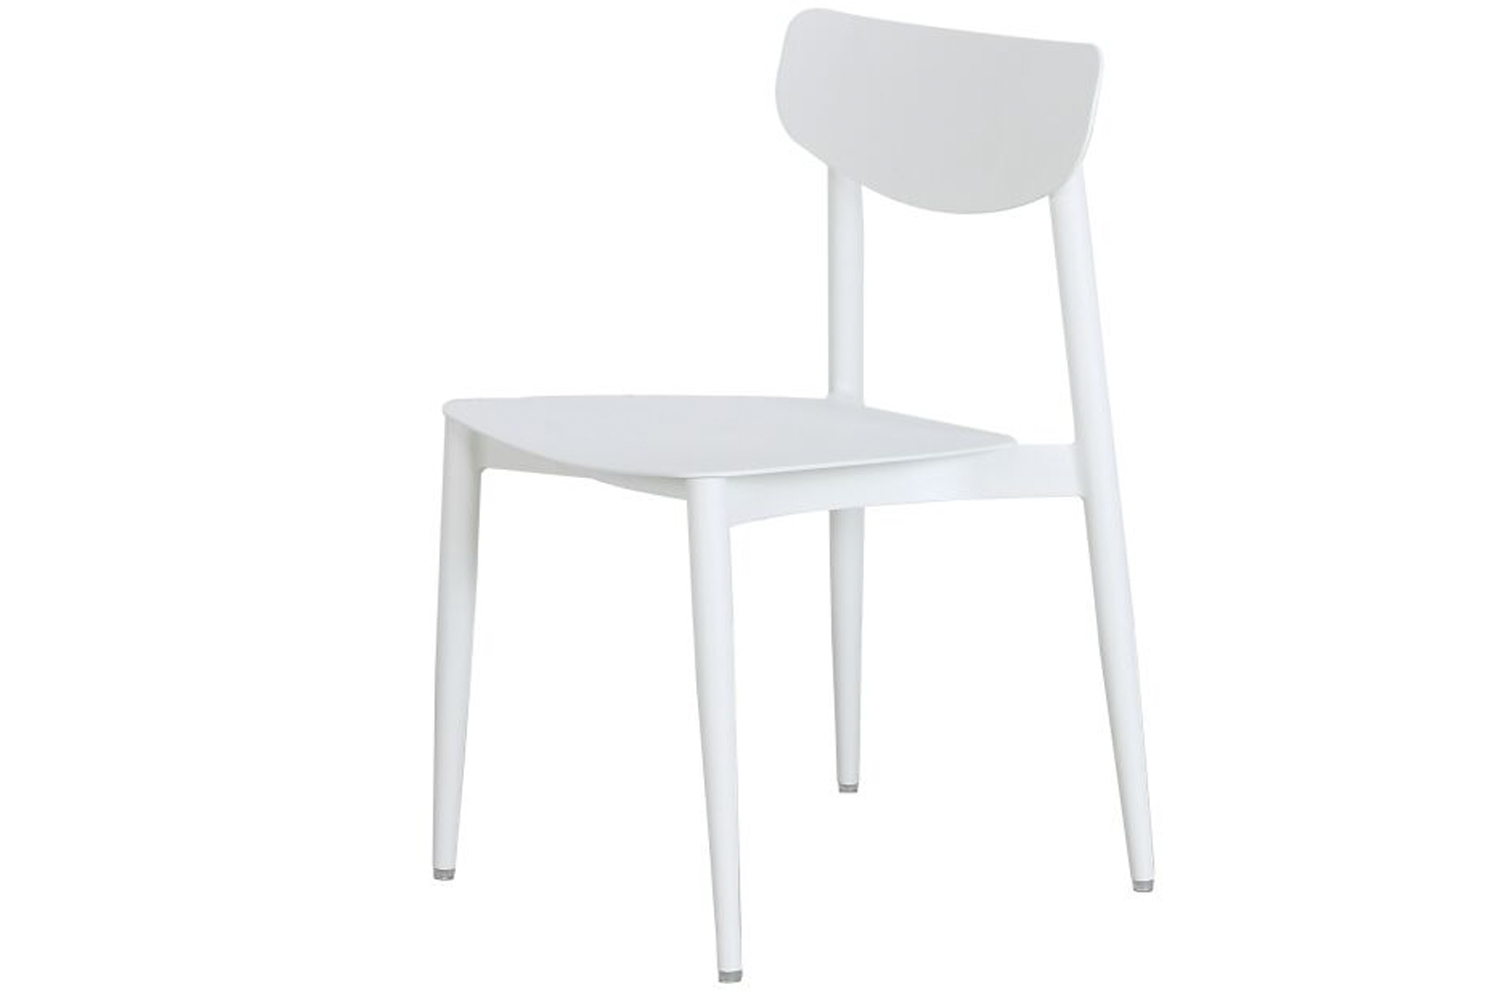 Each of the chair's upper bodies have a curvilinear support, adding both style and stability.